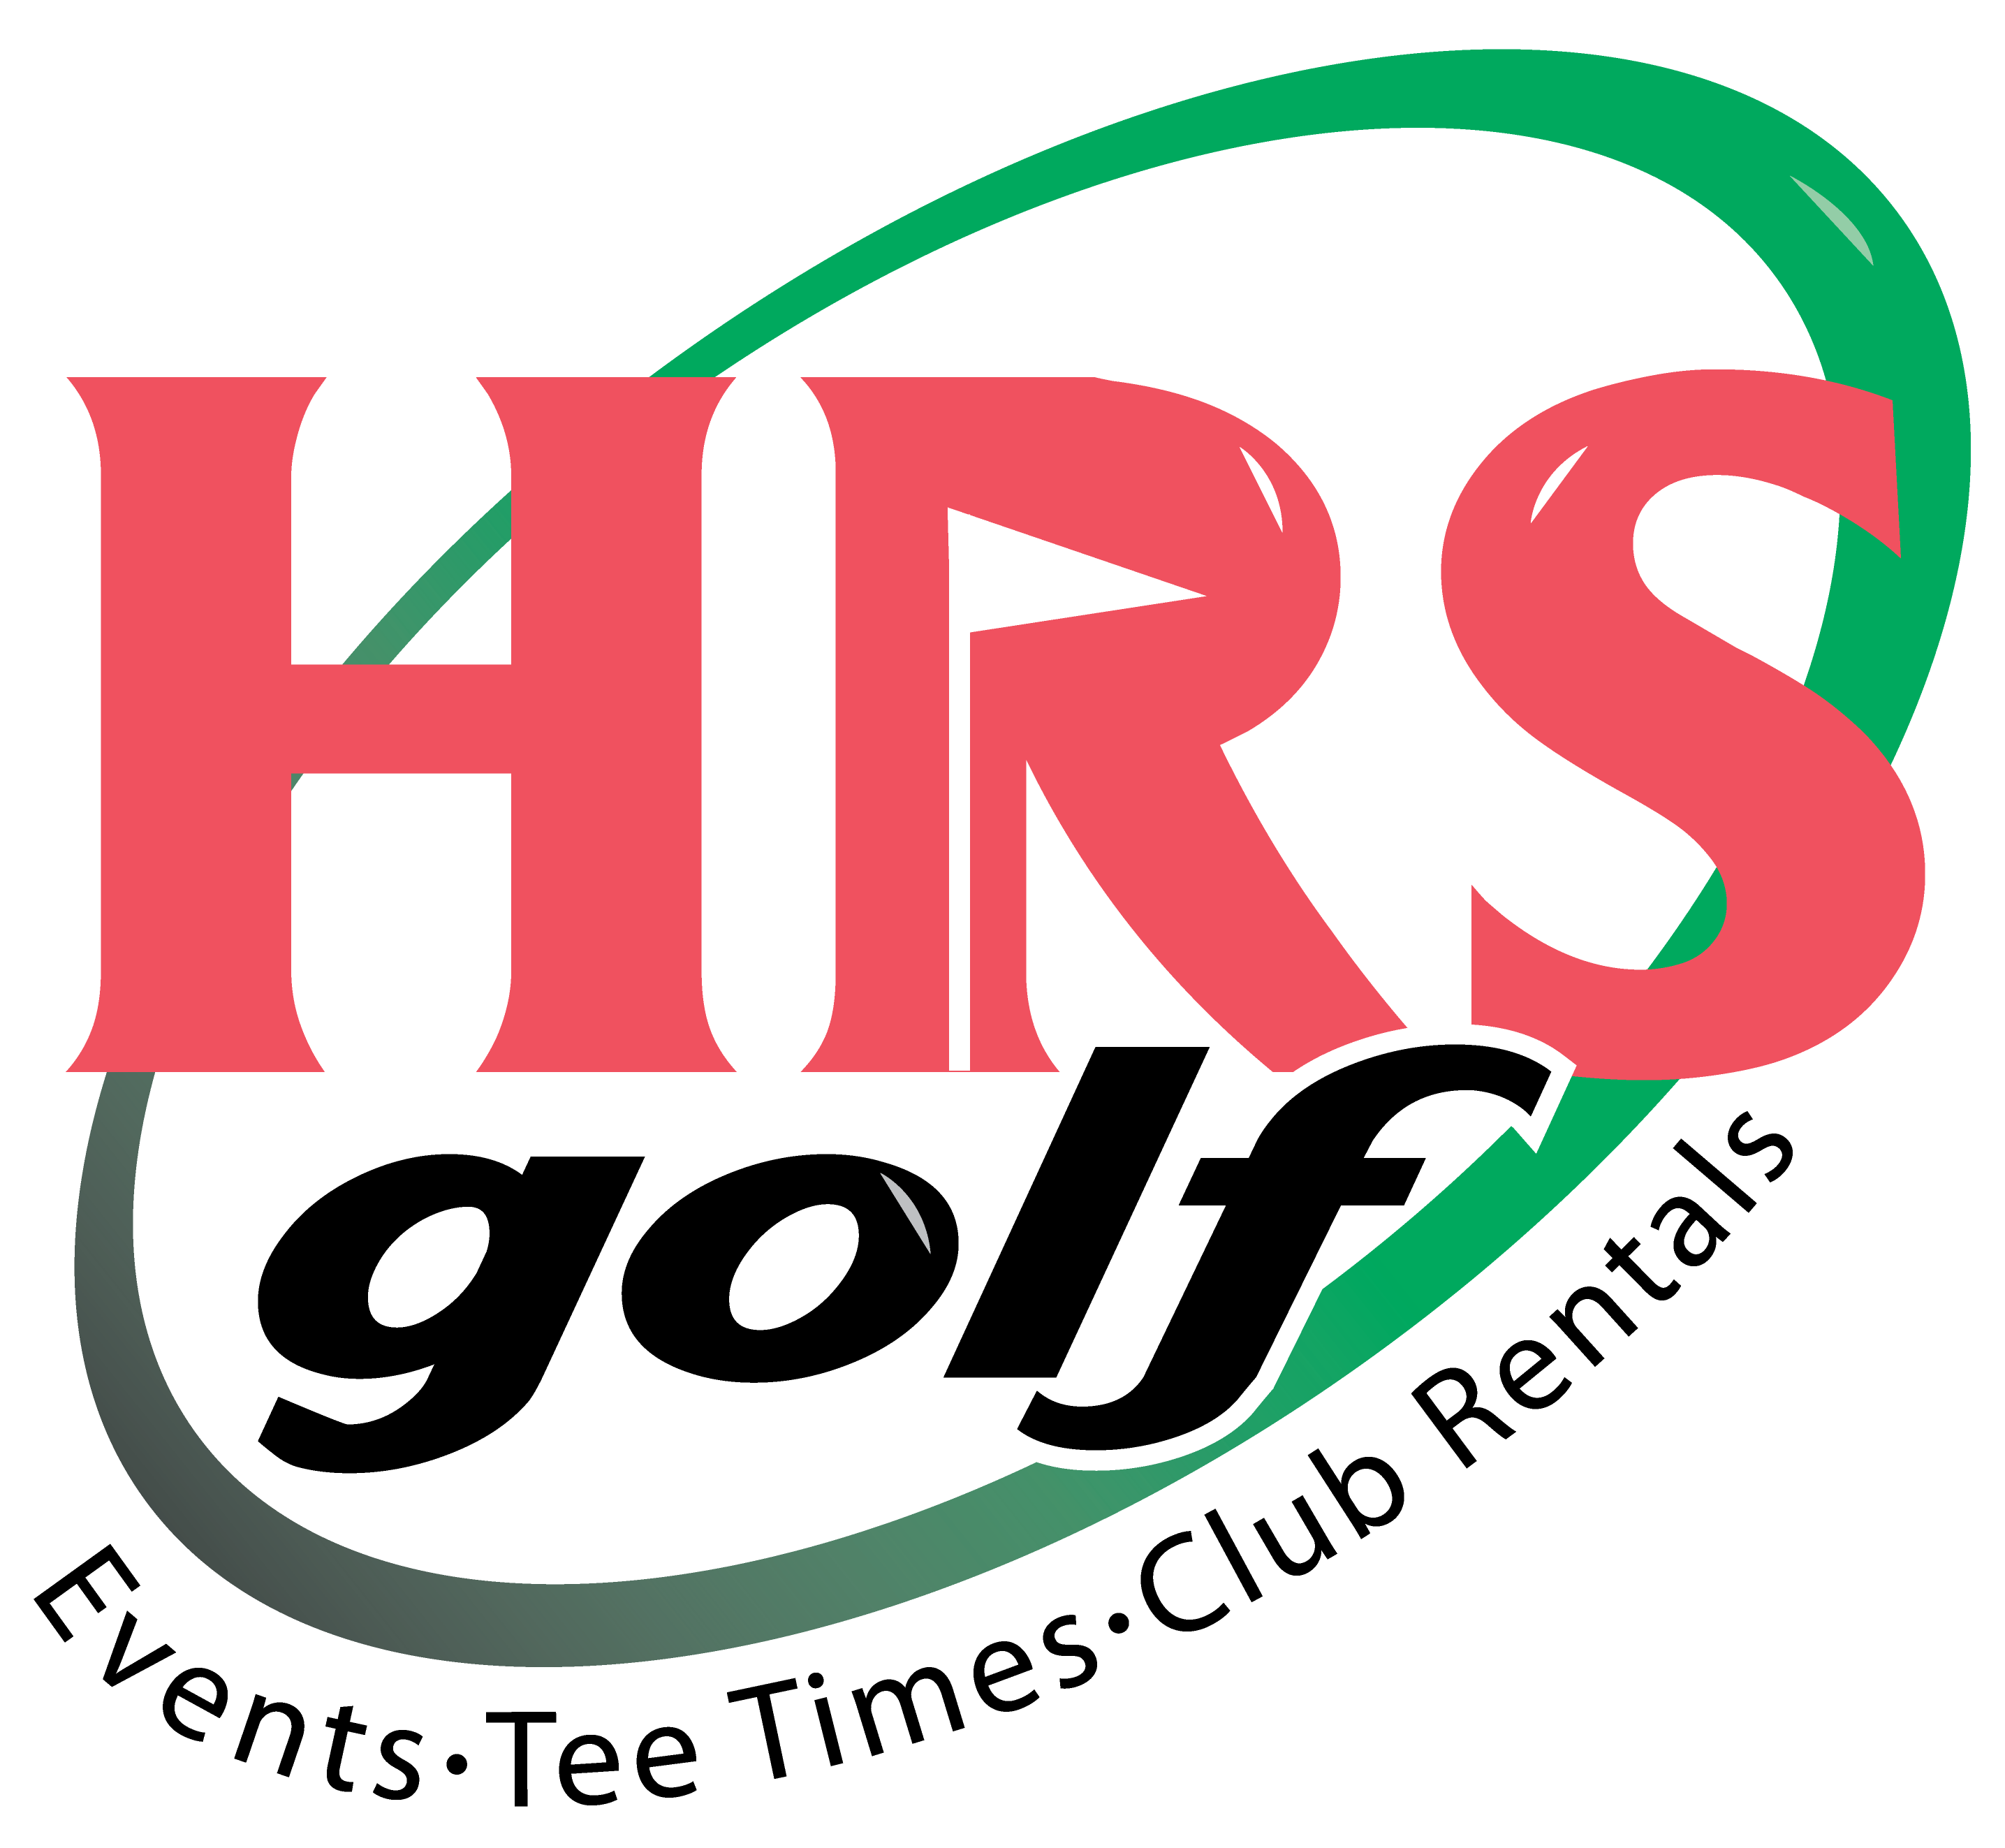 HRS Golf - Club Rentals Callaway & TaylorMade - Events - Tee Times